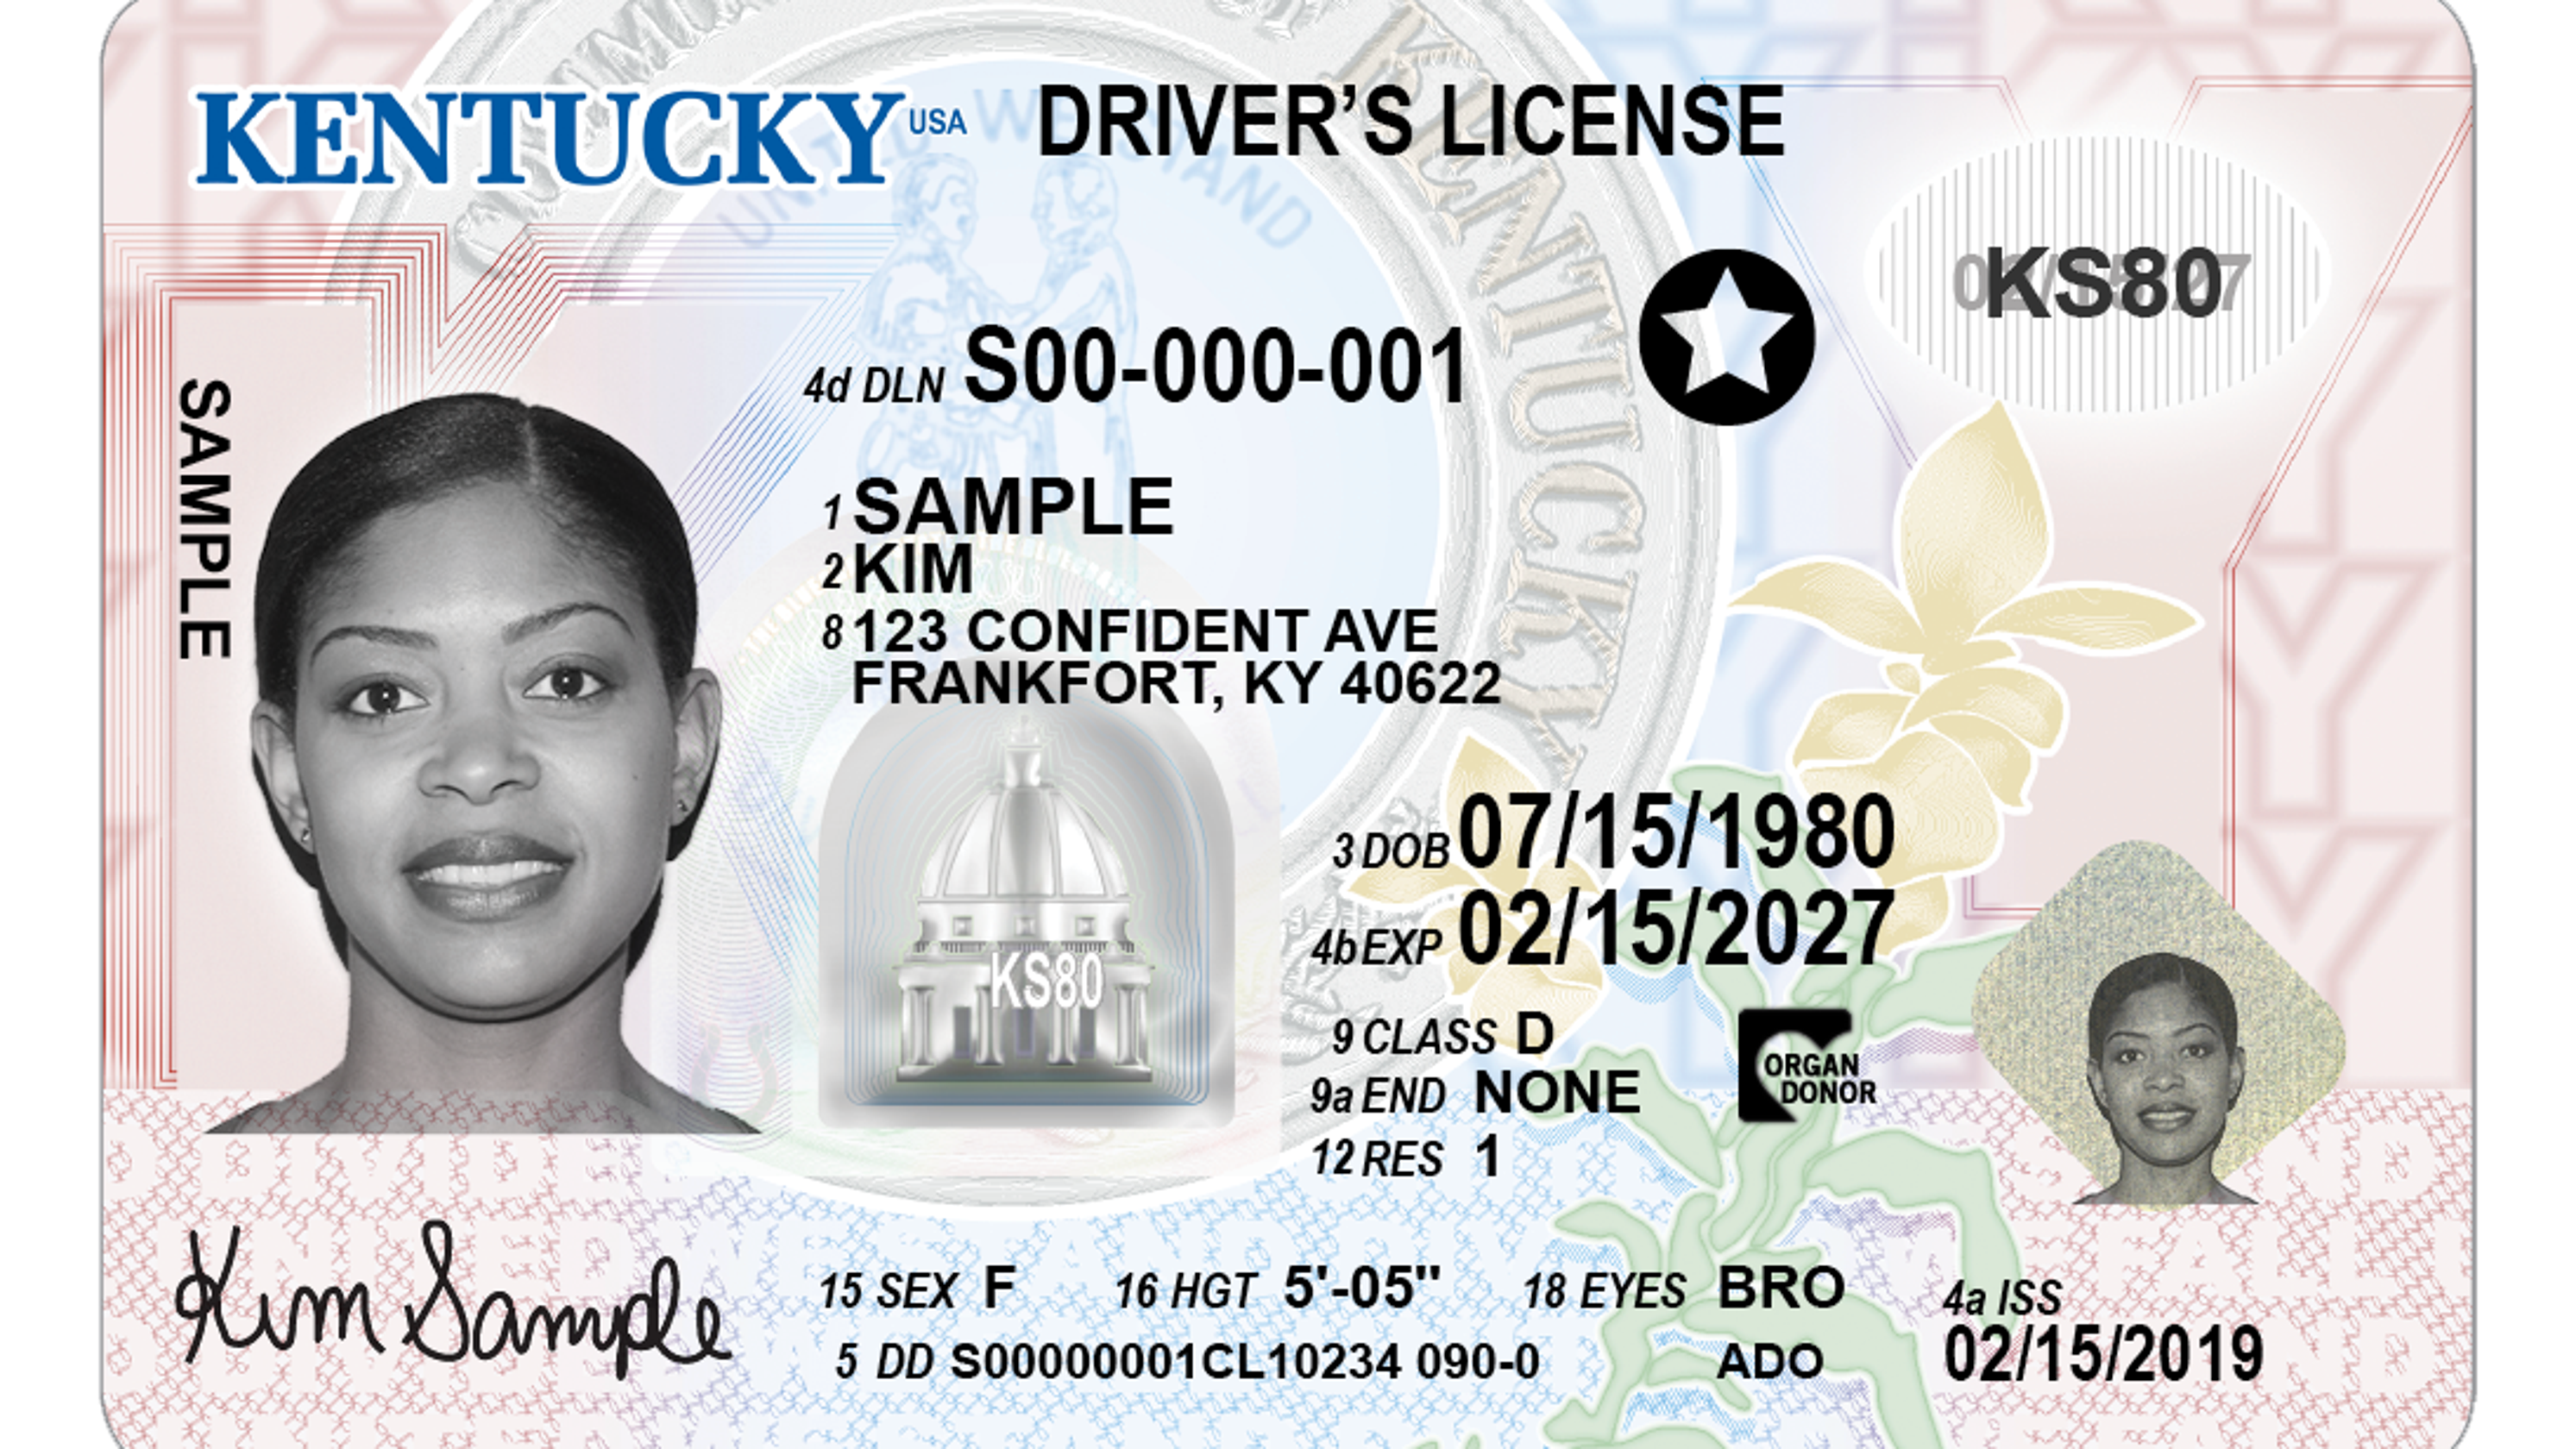 Travel Driver's Kentucky Id Reveals Design New For License